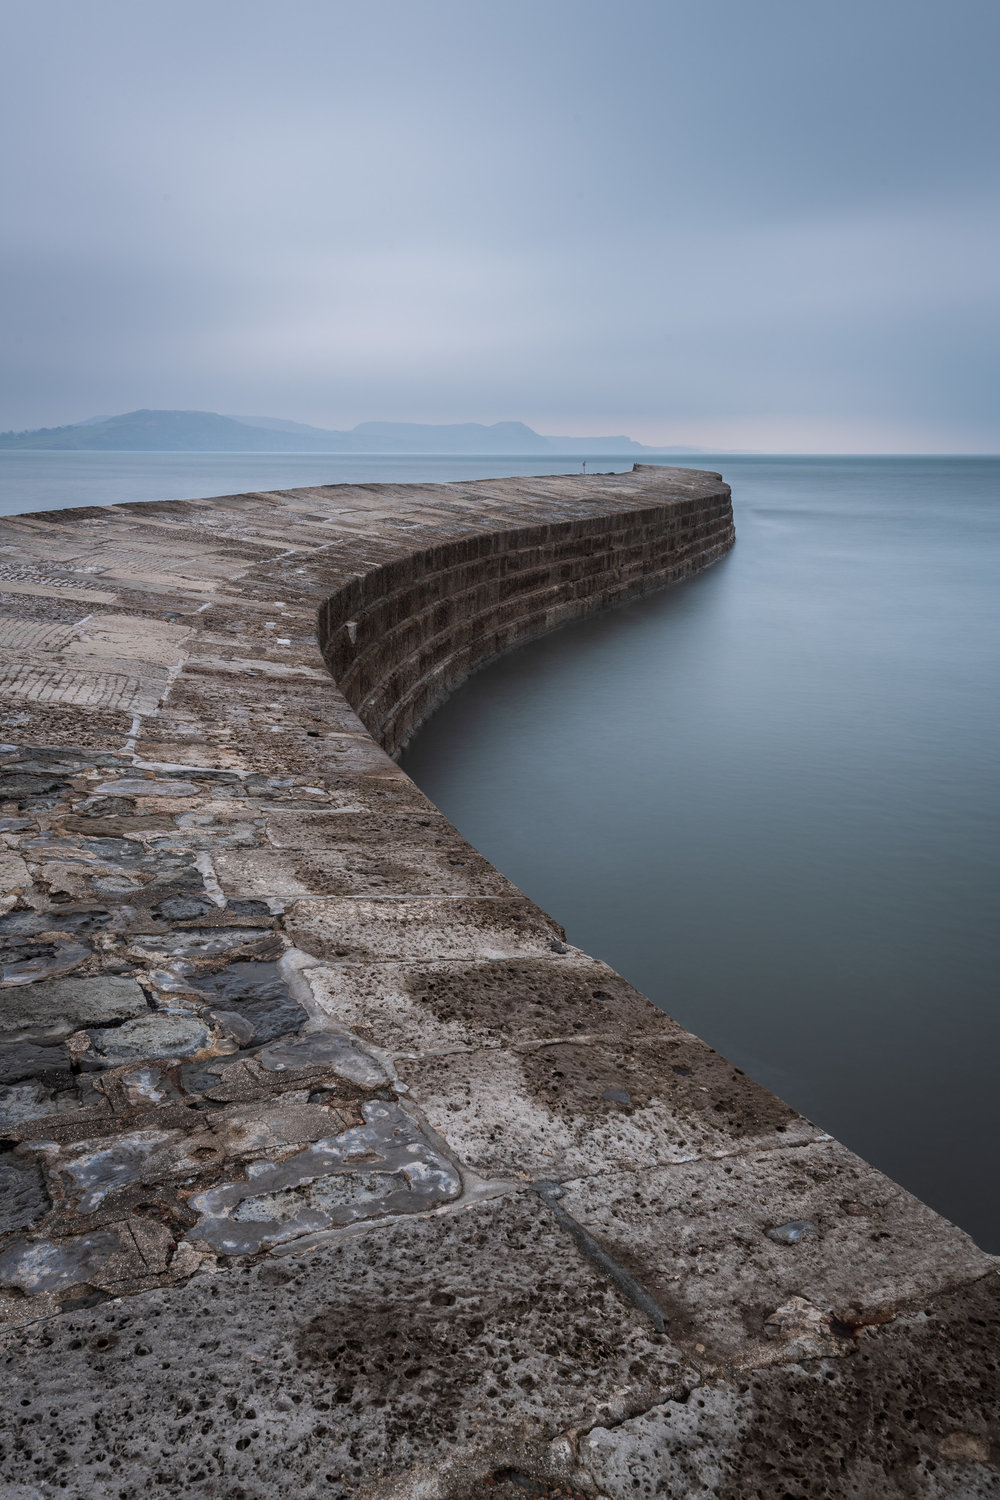 A New Vision of The Cobb, Lyme Regis, Dorset  - Nikon D850, Nikkor 16-35 mm f/4 at 24 mm, f/13, 30 secs at ISO 64.